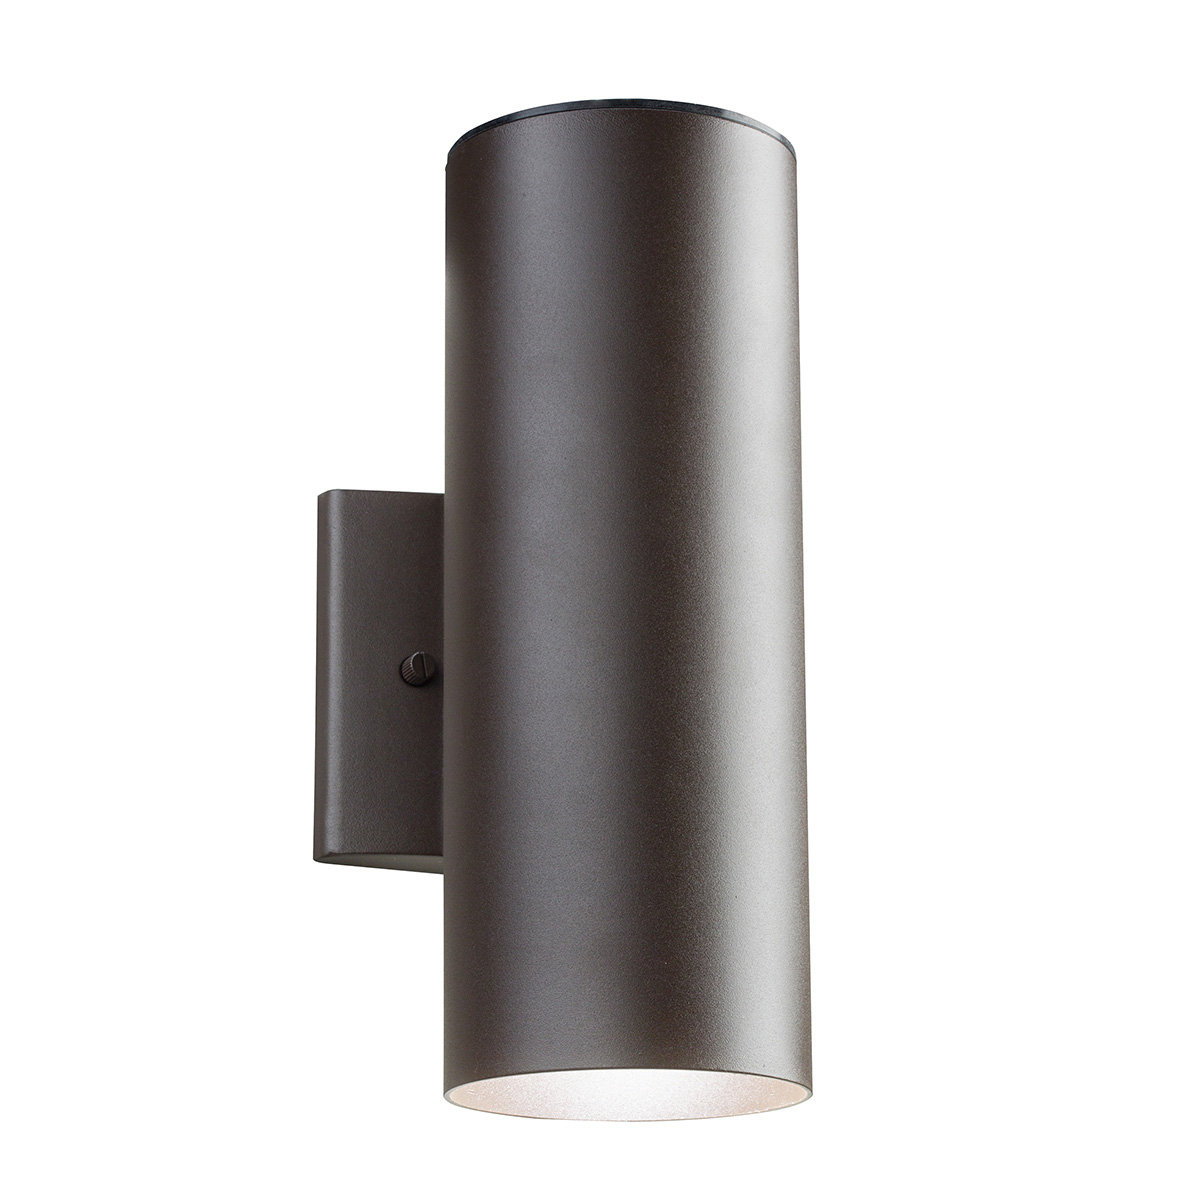 Outdoor Wall Mounted Lights | Wall Mount Outdoor Lighting Fixtures:11251 Outdoor LED Up/Down Wall Sconce,Lighting